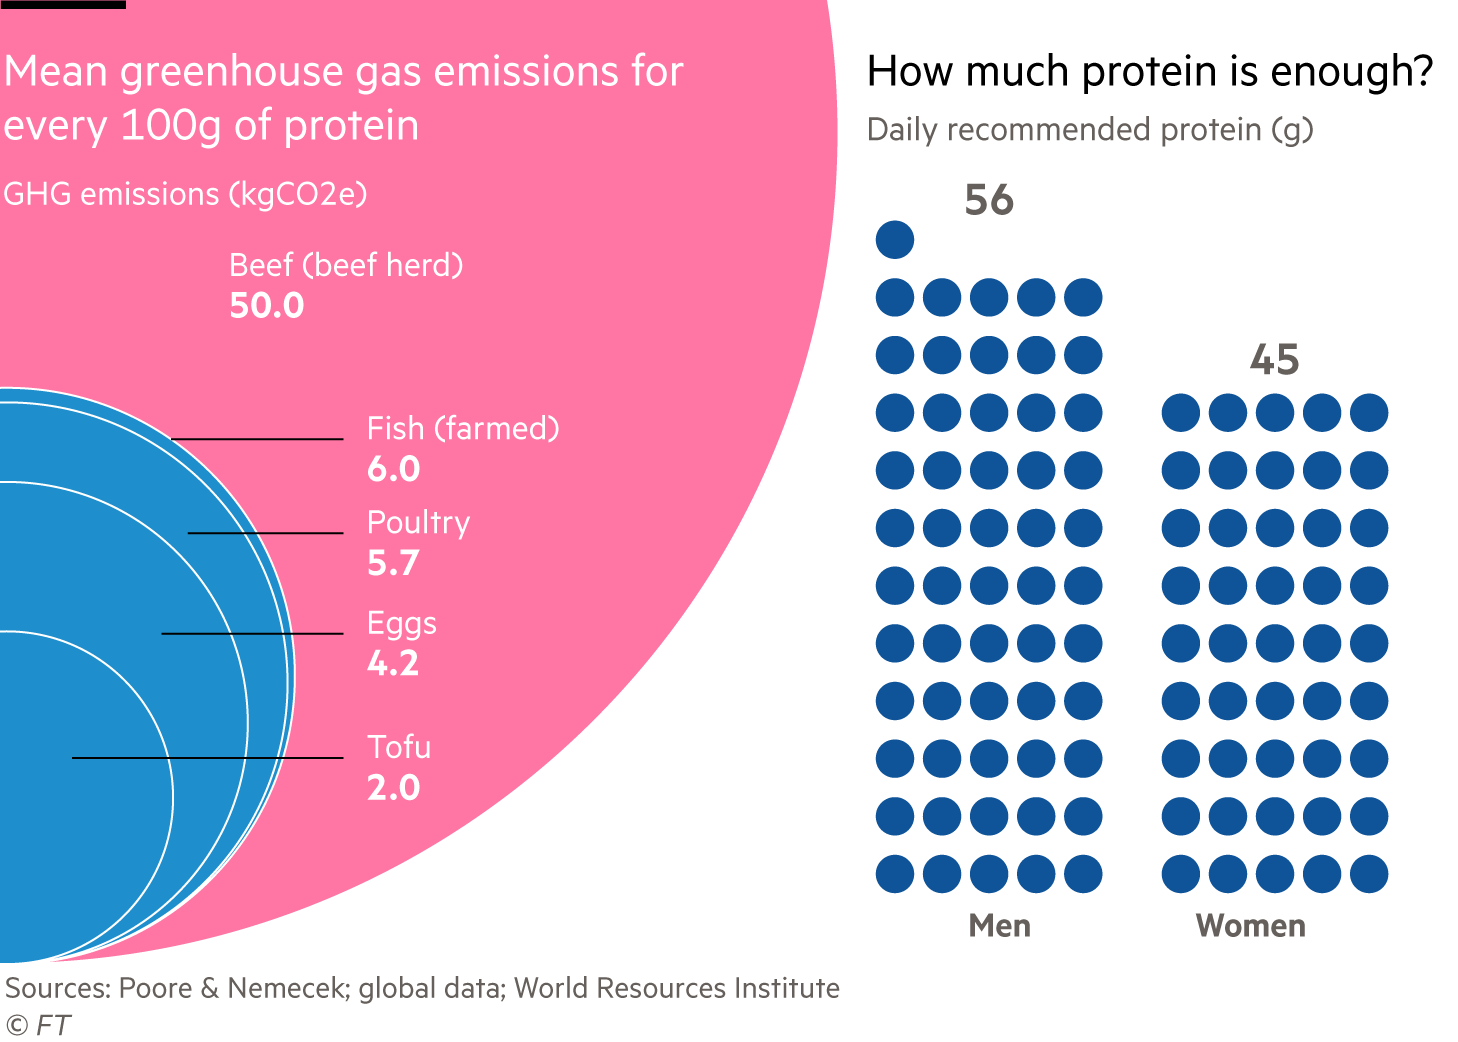 Charts showing mean greenhouse gas emissions